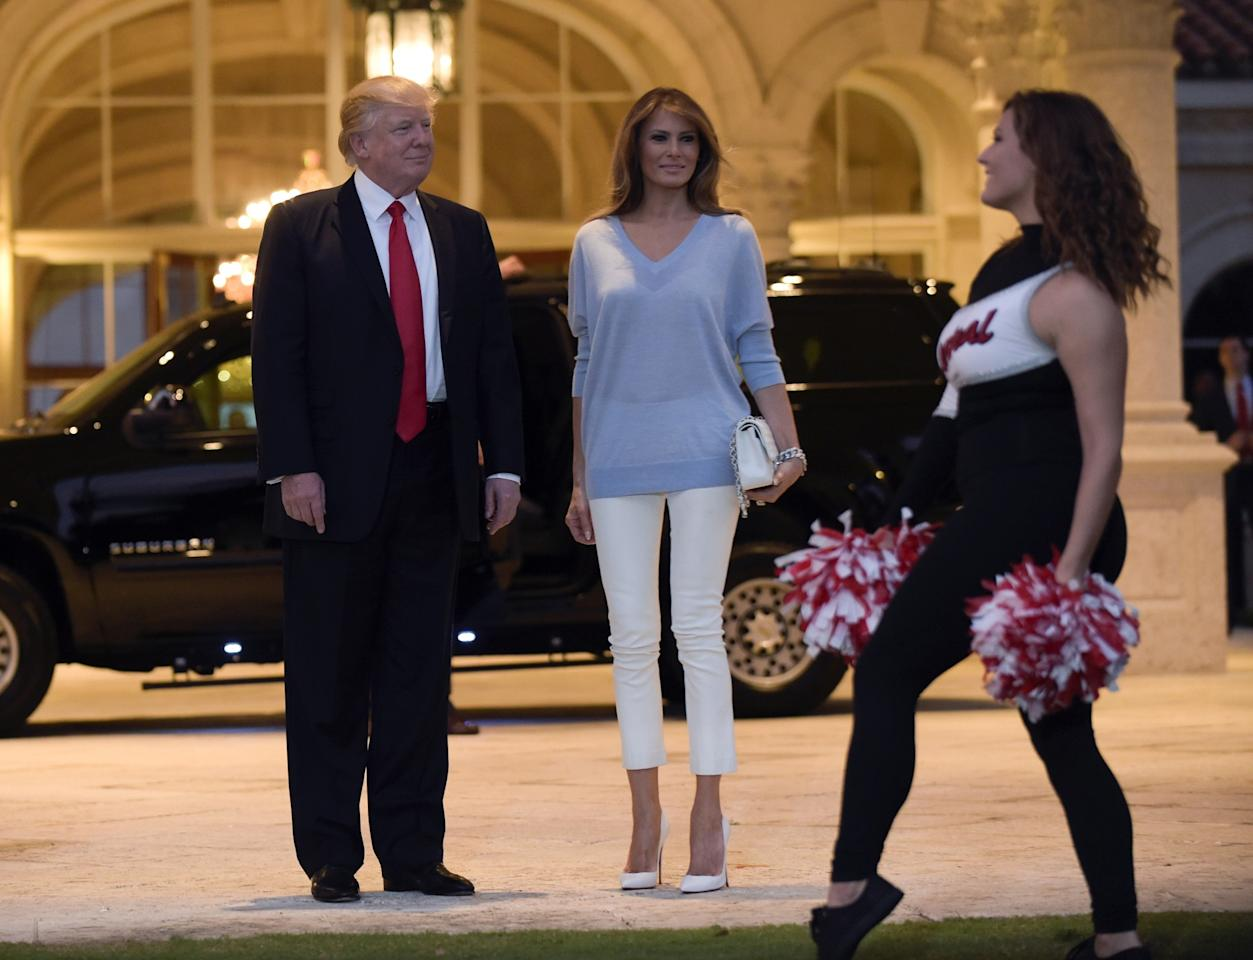 "<p>To watch the Super Bowl at a viewing party hosted by her husband, a Patriots fan because of his friendship with Tom Brady and Robert Kraft, Melania Trump dressed in the Palm Beach version of patriotic colors: cropped white pants and light blue sweater (and red blush to complete the look). The Double V-neck felted lambswool sweater in light blue comes from Victoria Beckham and retails for $1,100. She accessorized with Chanel's classic quilted flap bag in white ($4,495) and matching ""So Kate"" Christian Louboutin pumps ($695). (Photo: AP) </p>"